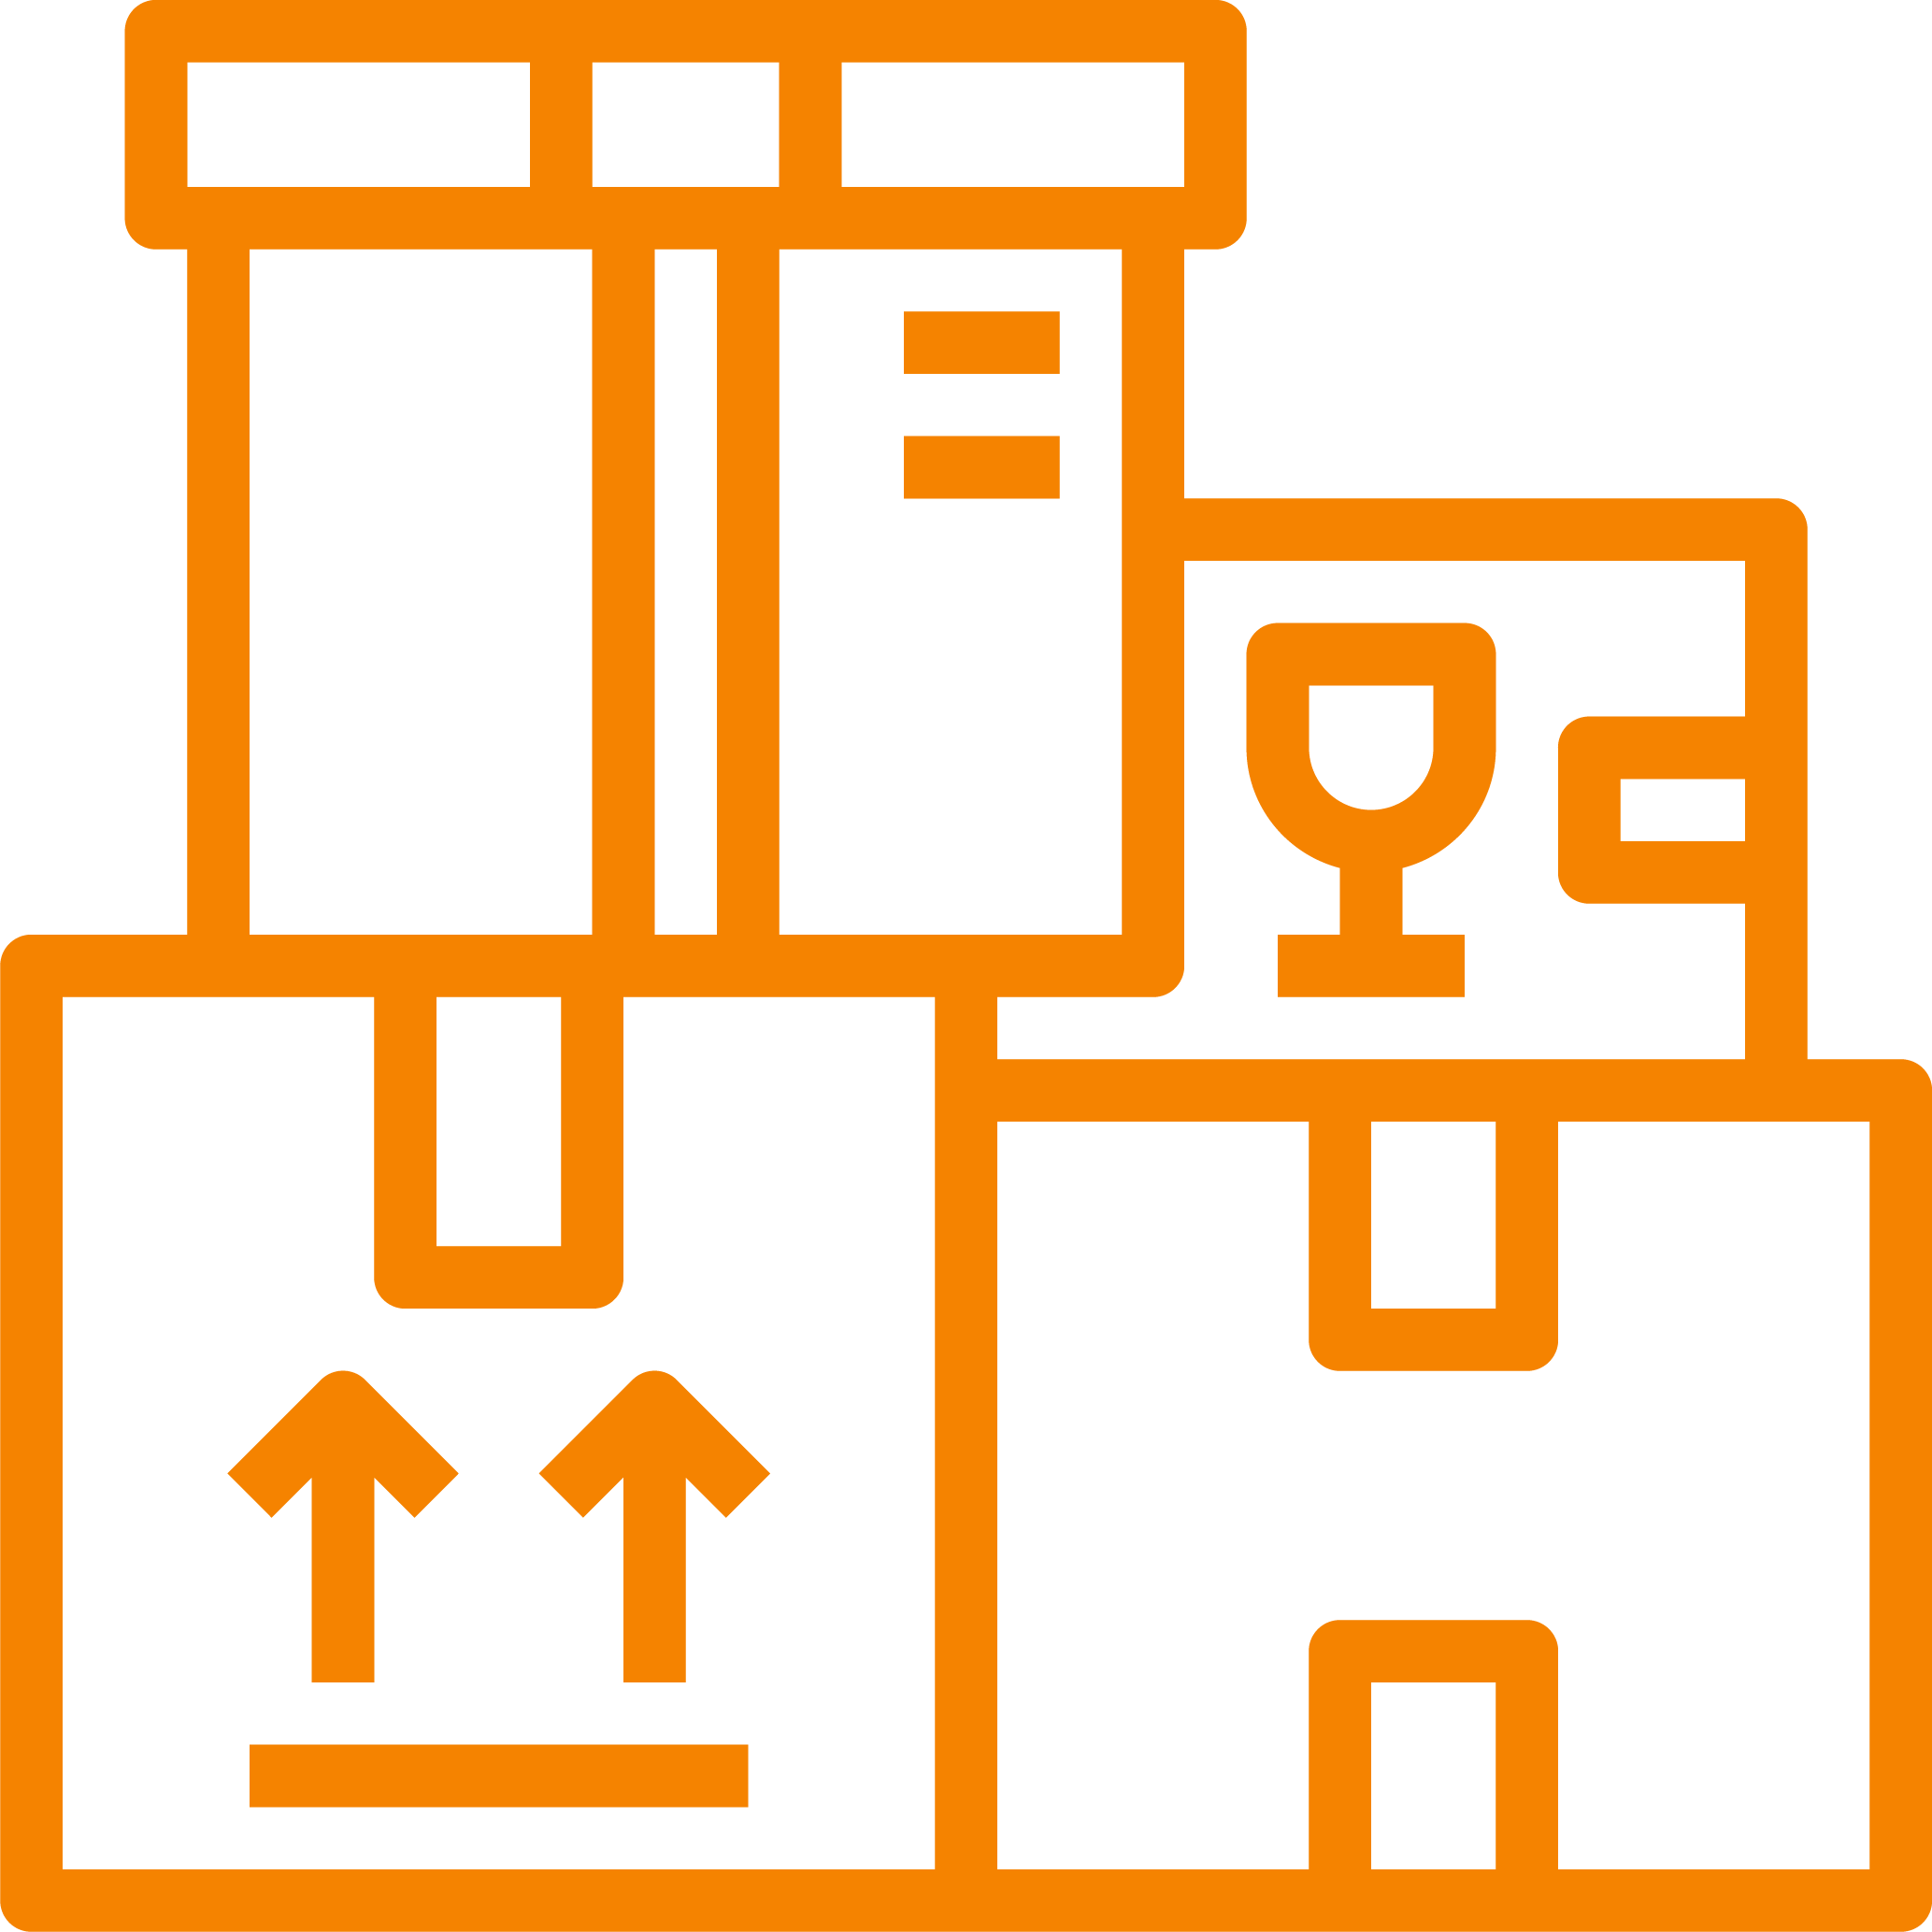 storage containers icon